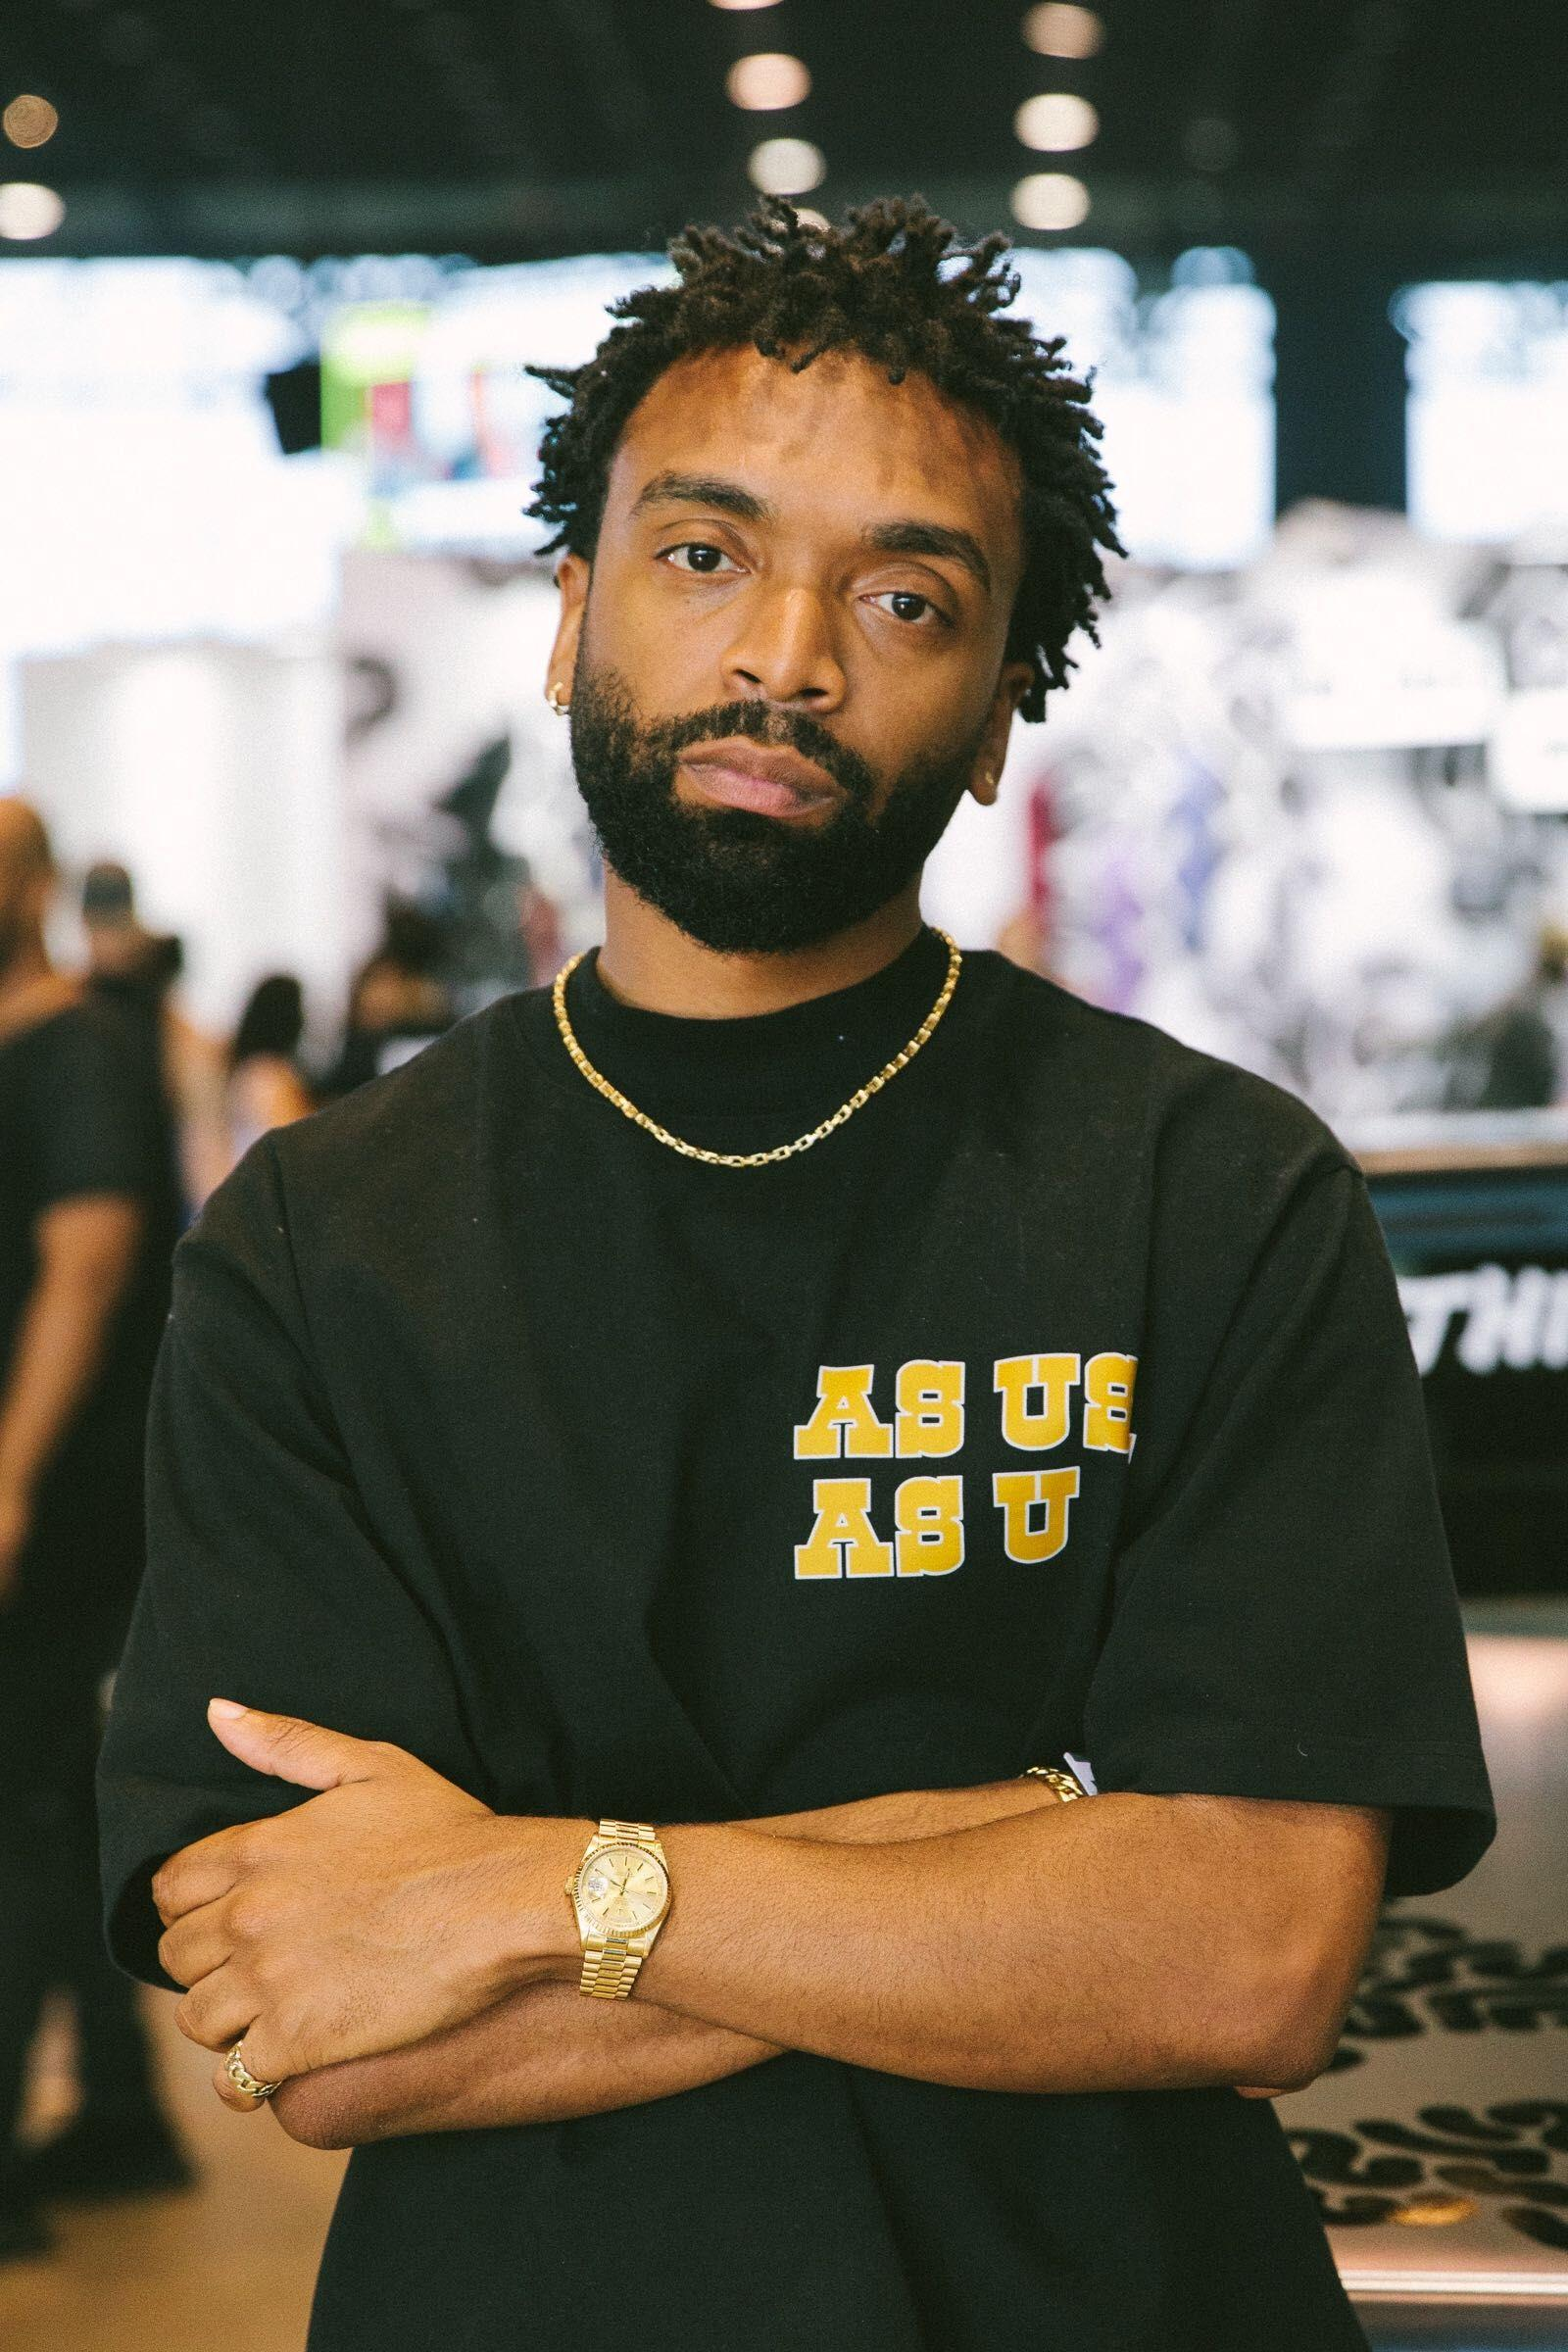 A person with short dreadlocks and a beard stands with arms crossed and head slightly tilted to their left while regarding the viewer with a serious expression.